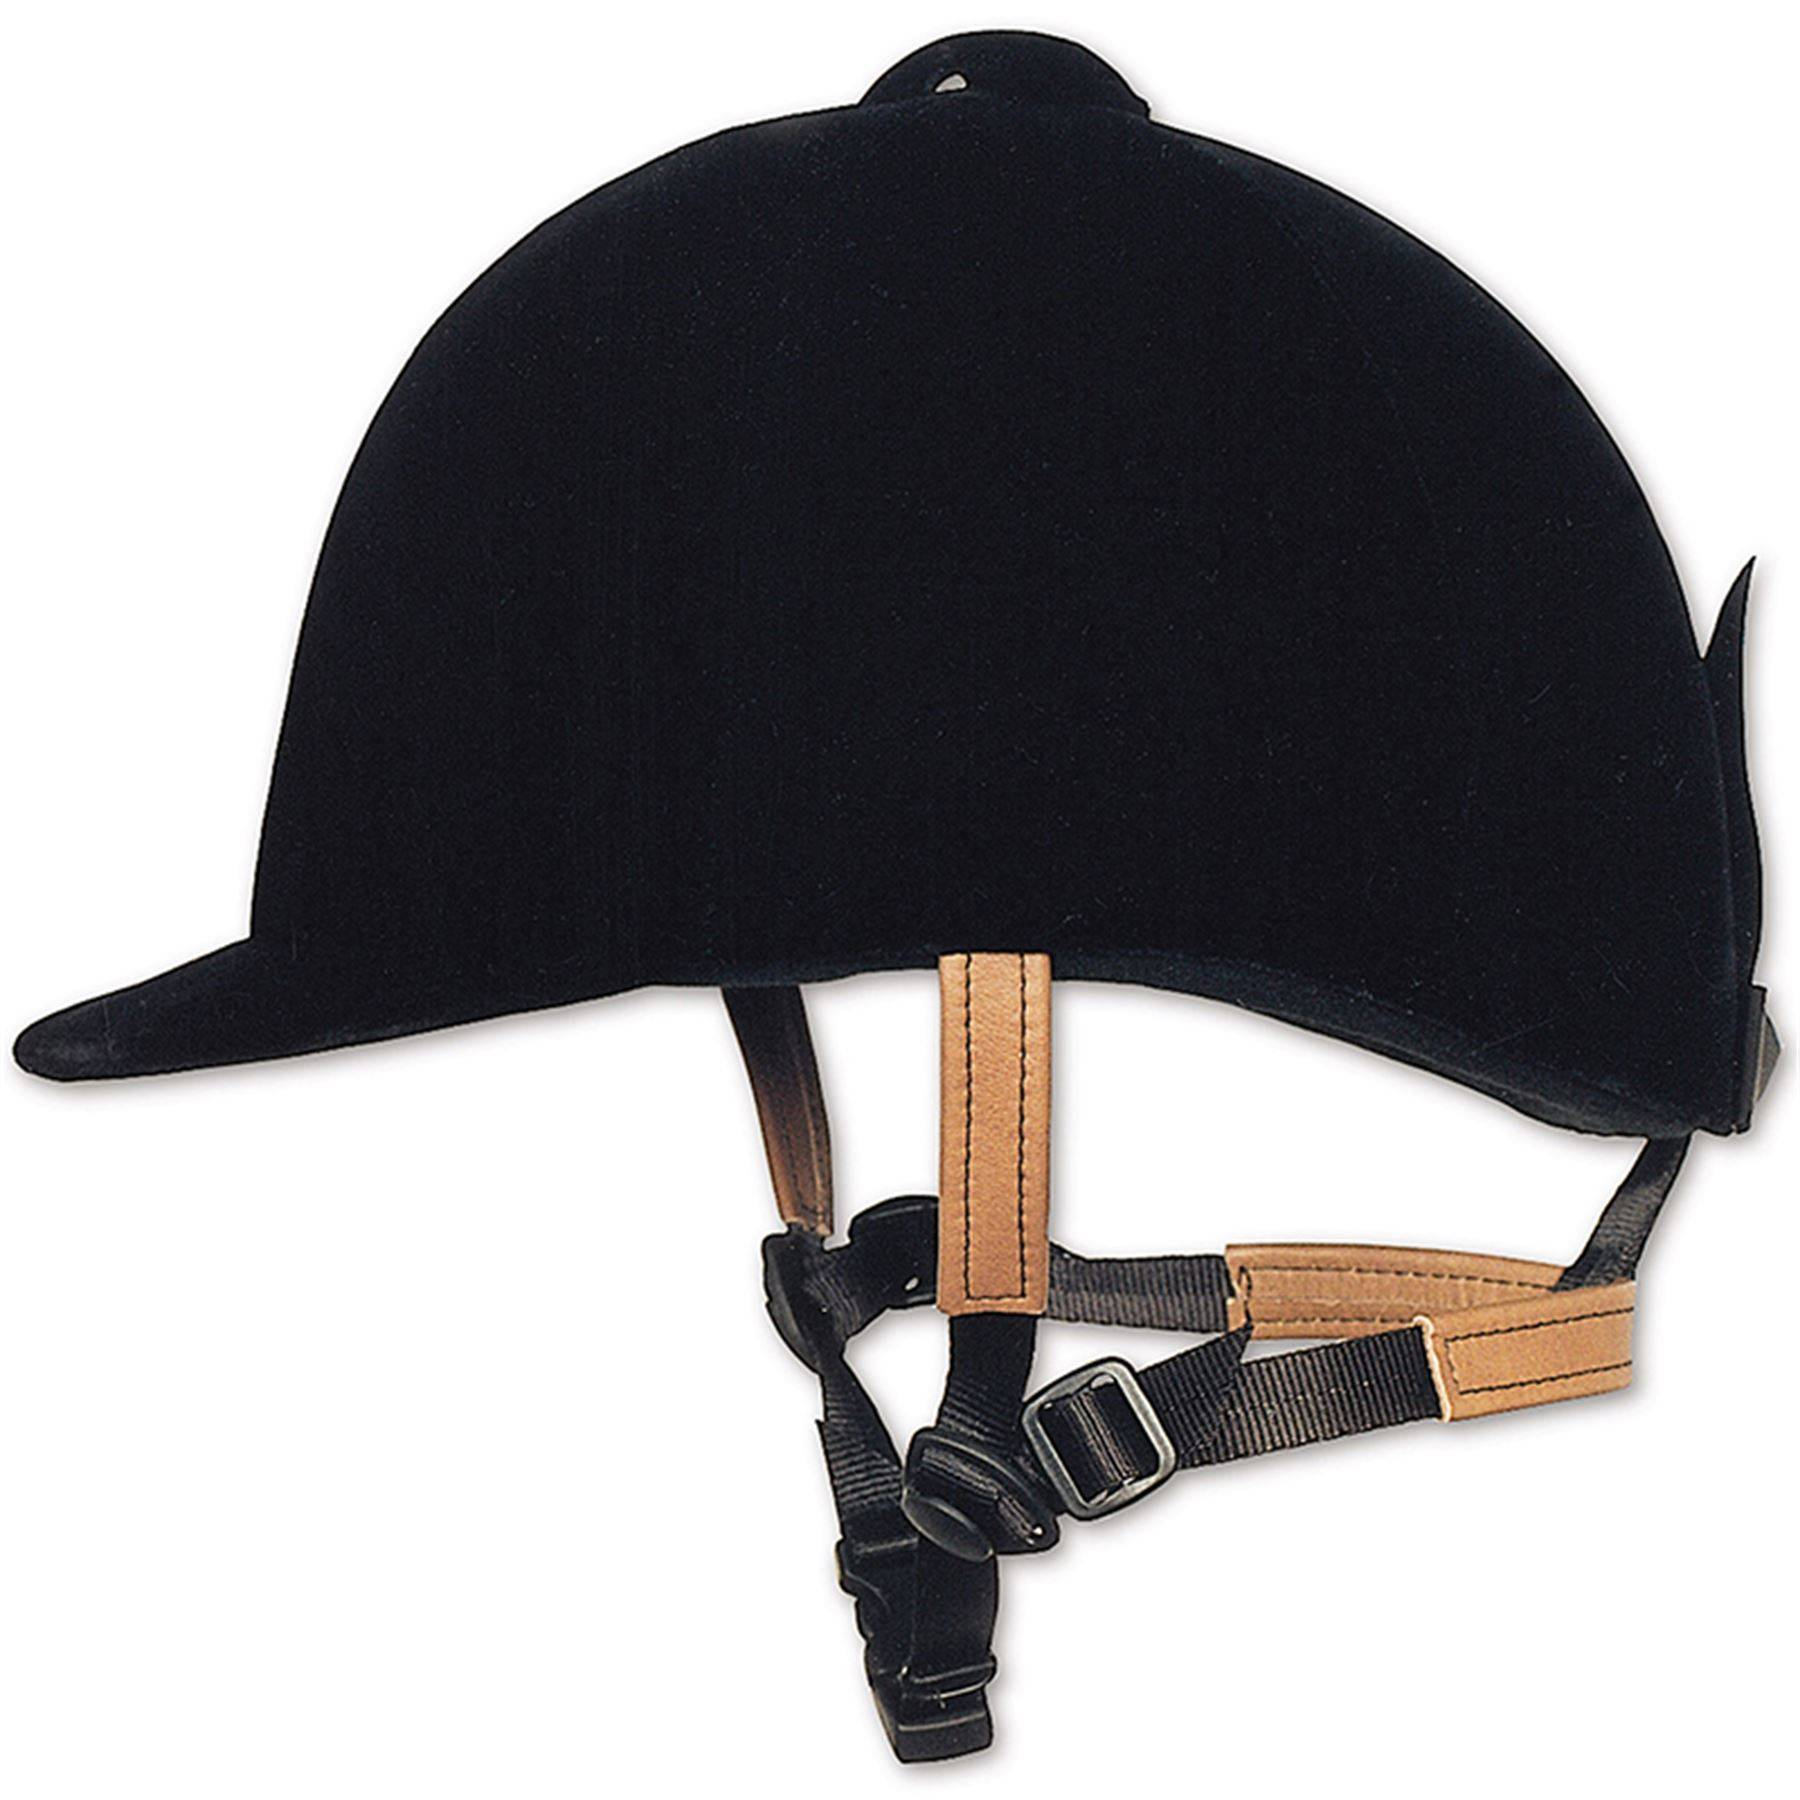 Olympian Velvet Helmet With 3 Point Adujstable Harness